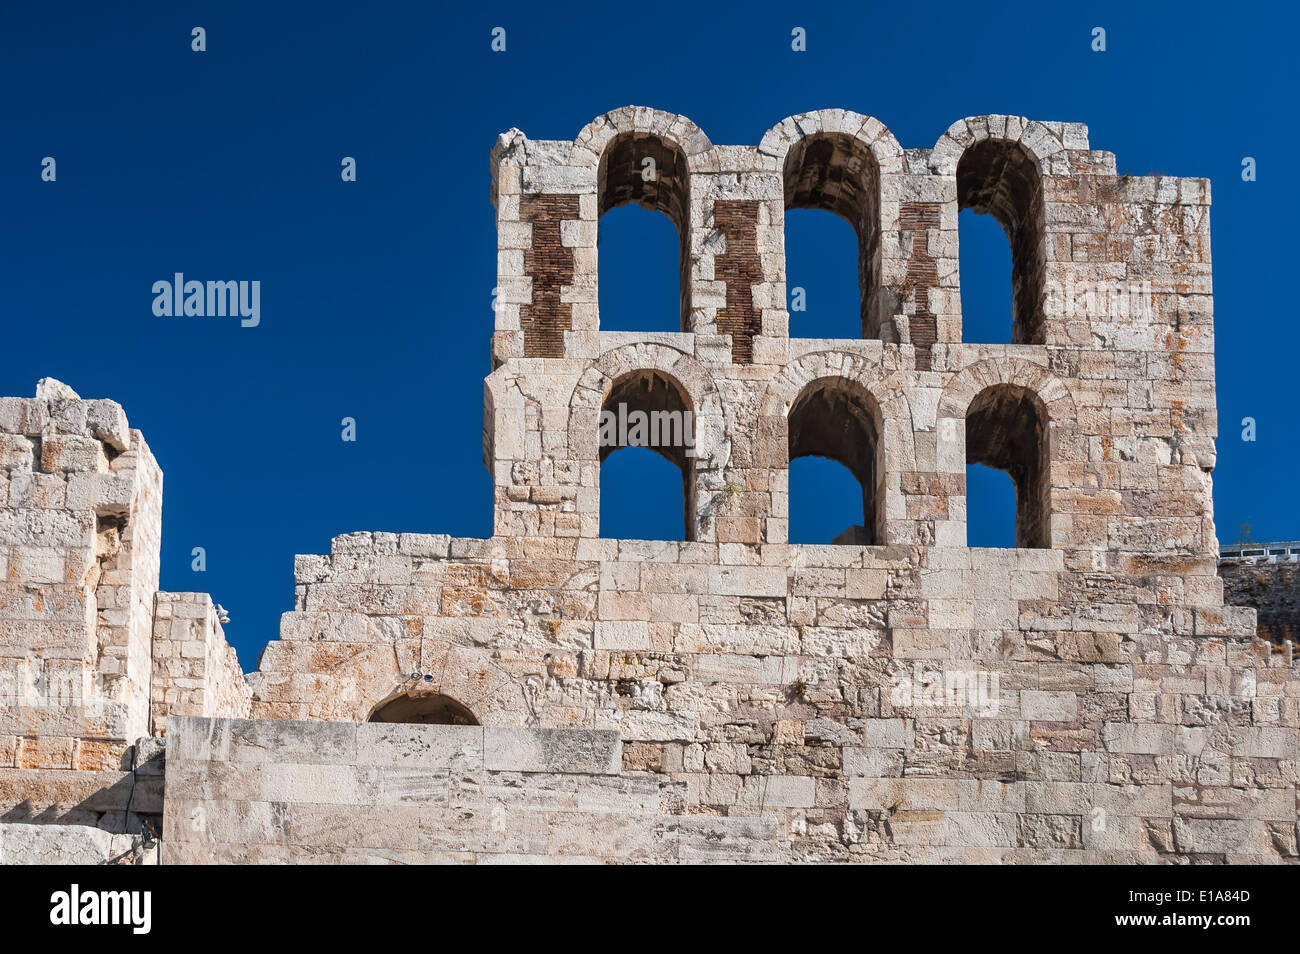 Athens, Greece. Ruins of Odeon Theatre, ancient classical greek architecture. - Stock Image